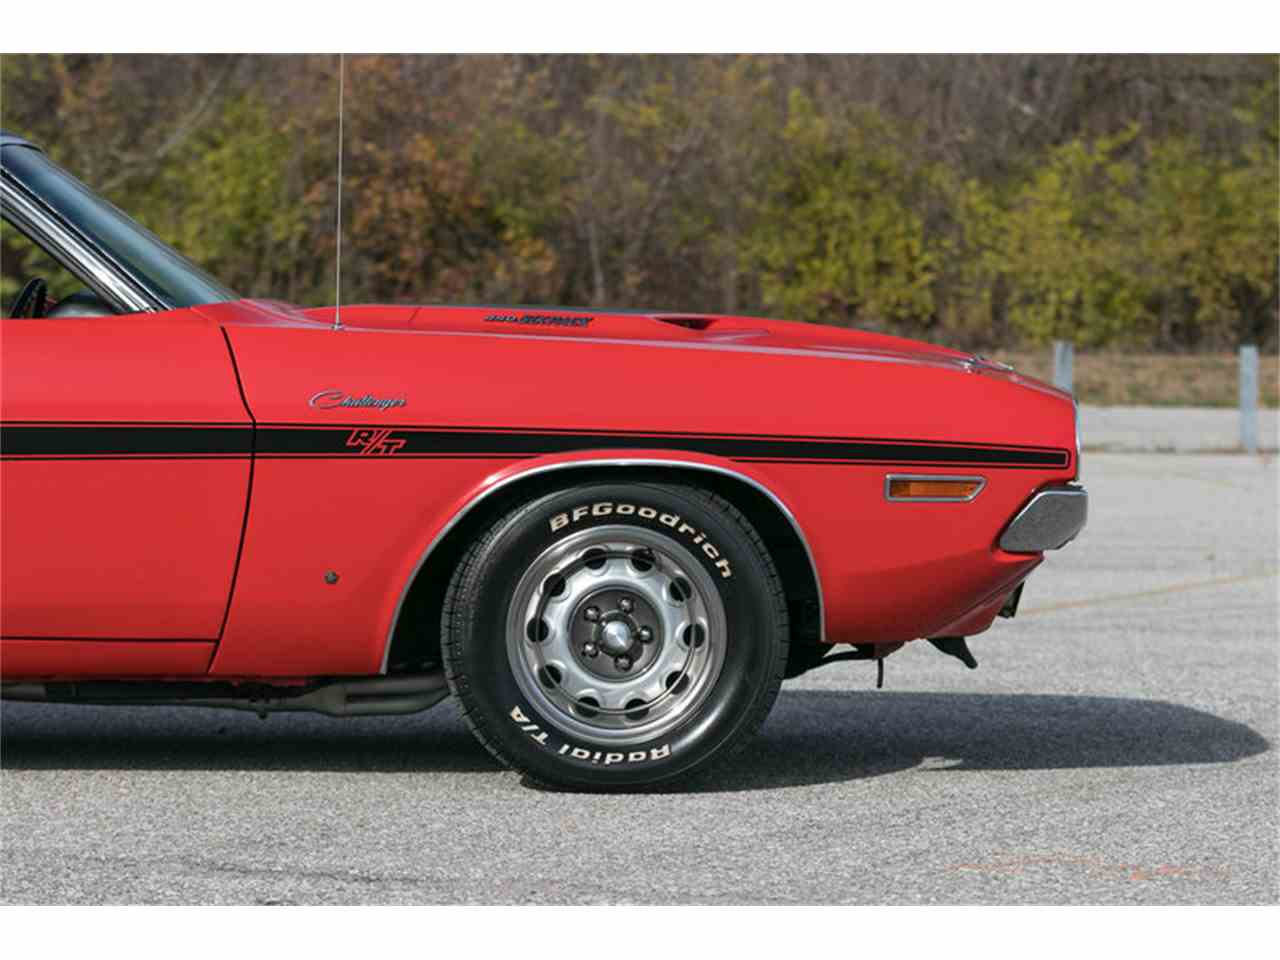 Large Picture of 1970 Dodge Challenger R/T located in St. Charles Missouri - MF41